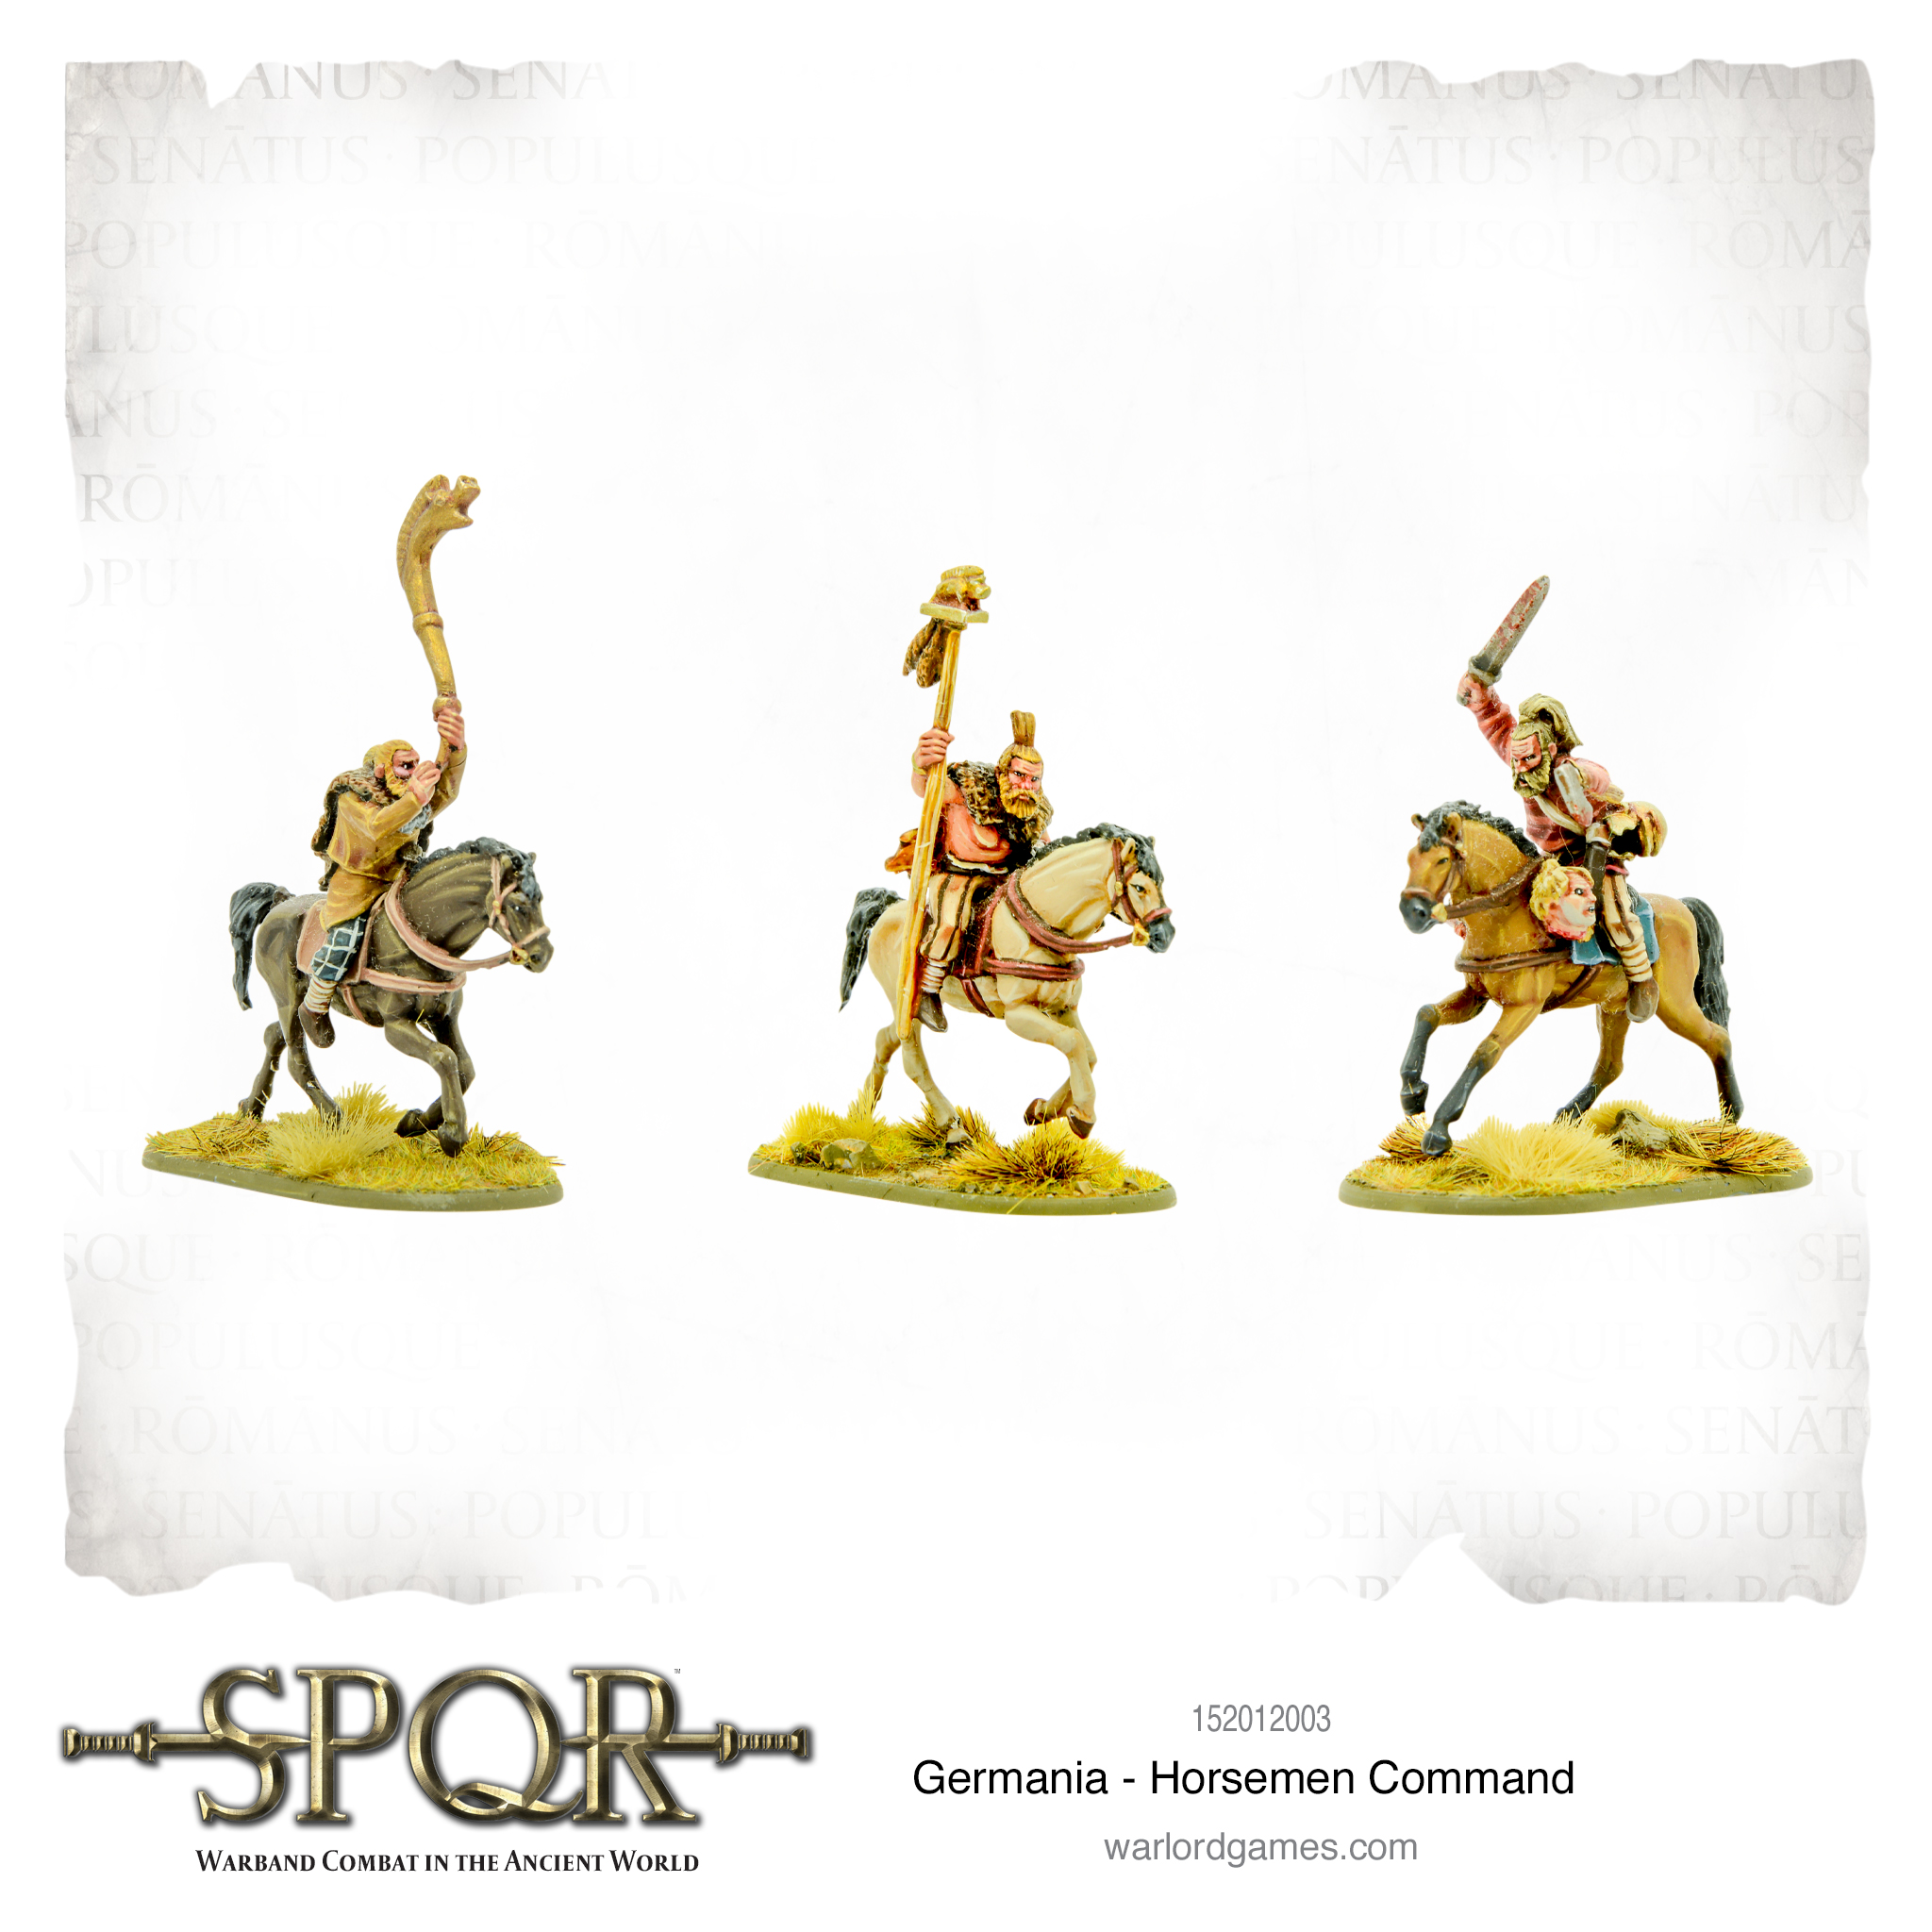 SPQR: Germania - Horsemen command